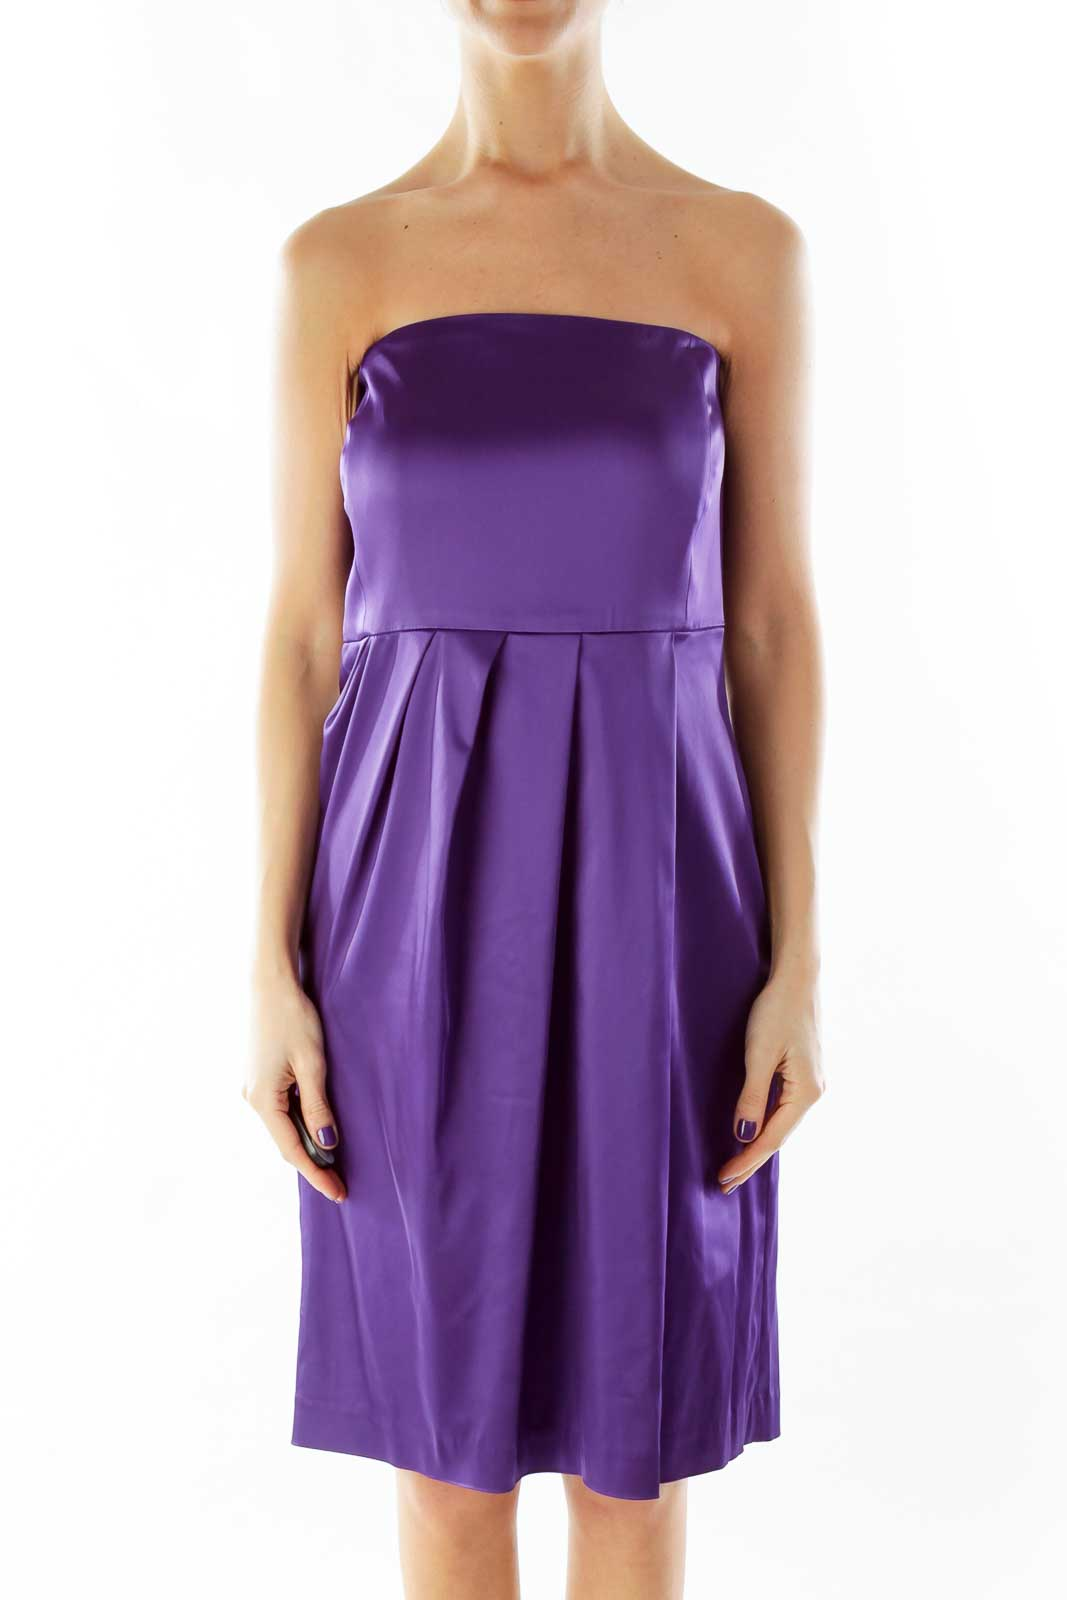 Purple Strapless Cocktail Dress